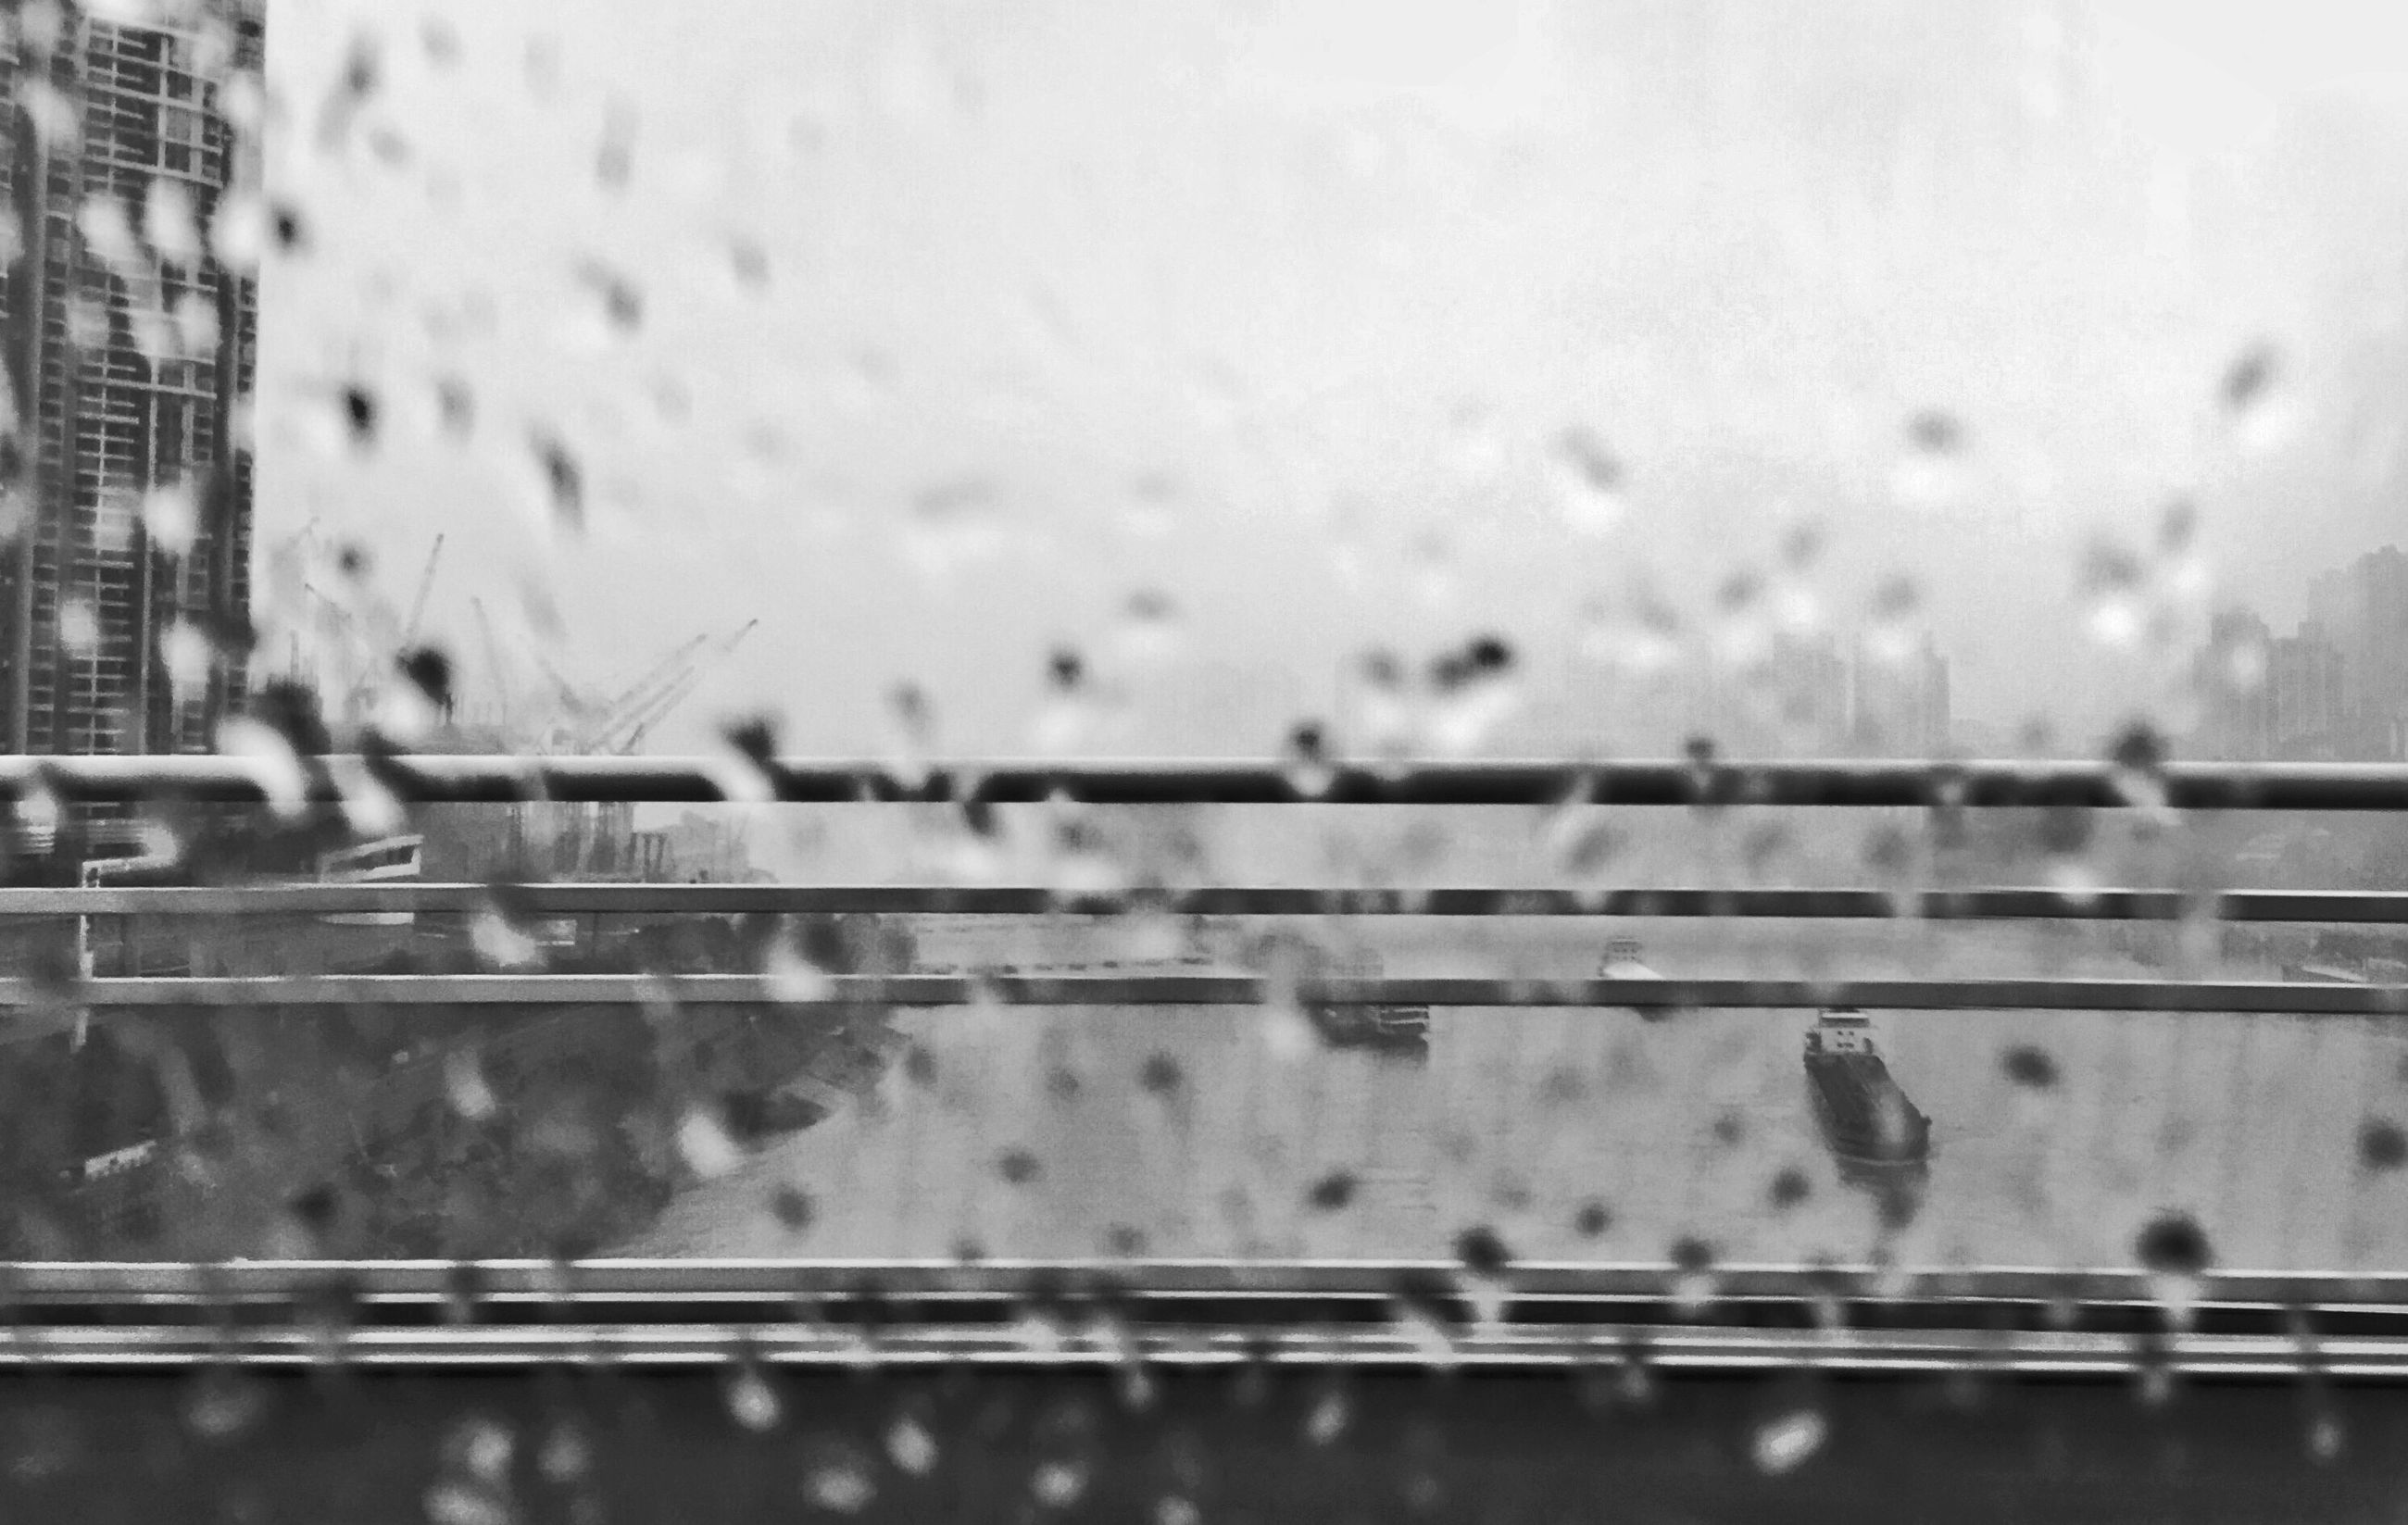 window, water, drop, focus on foreground, glass - material, transparent, wet, rain, indoors, railing, close-up, built structure, building exterior, architecture, metal, glass, full frame, day, backgrounds, reflection